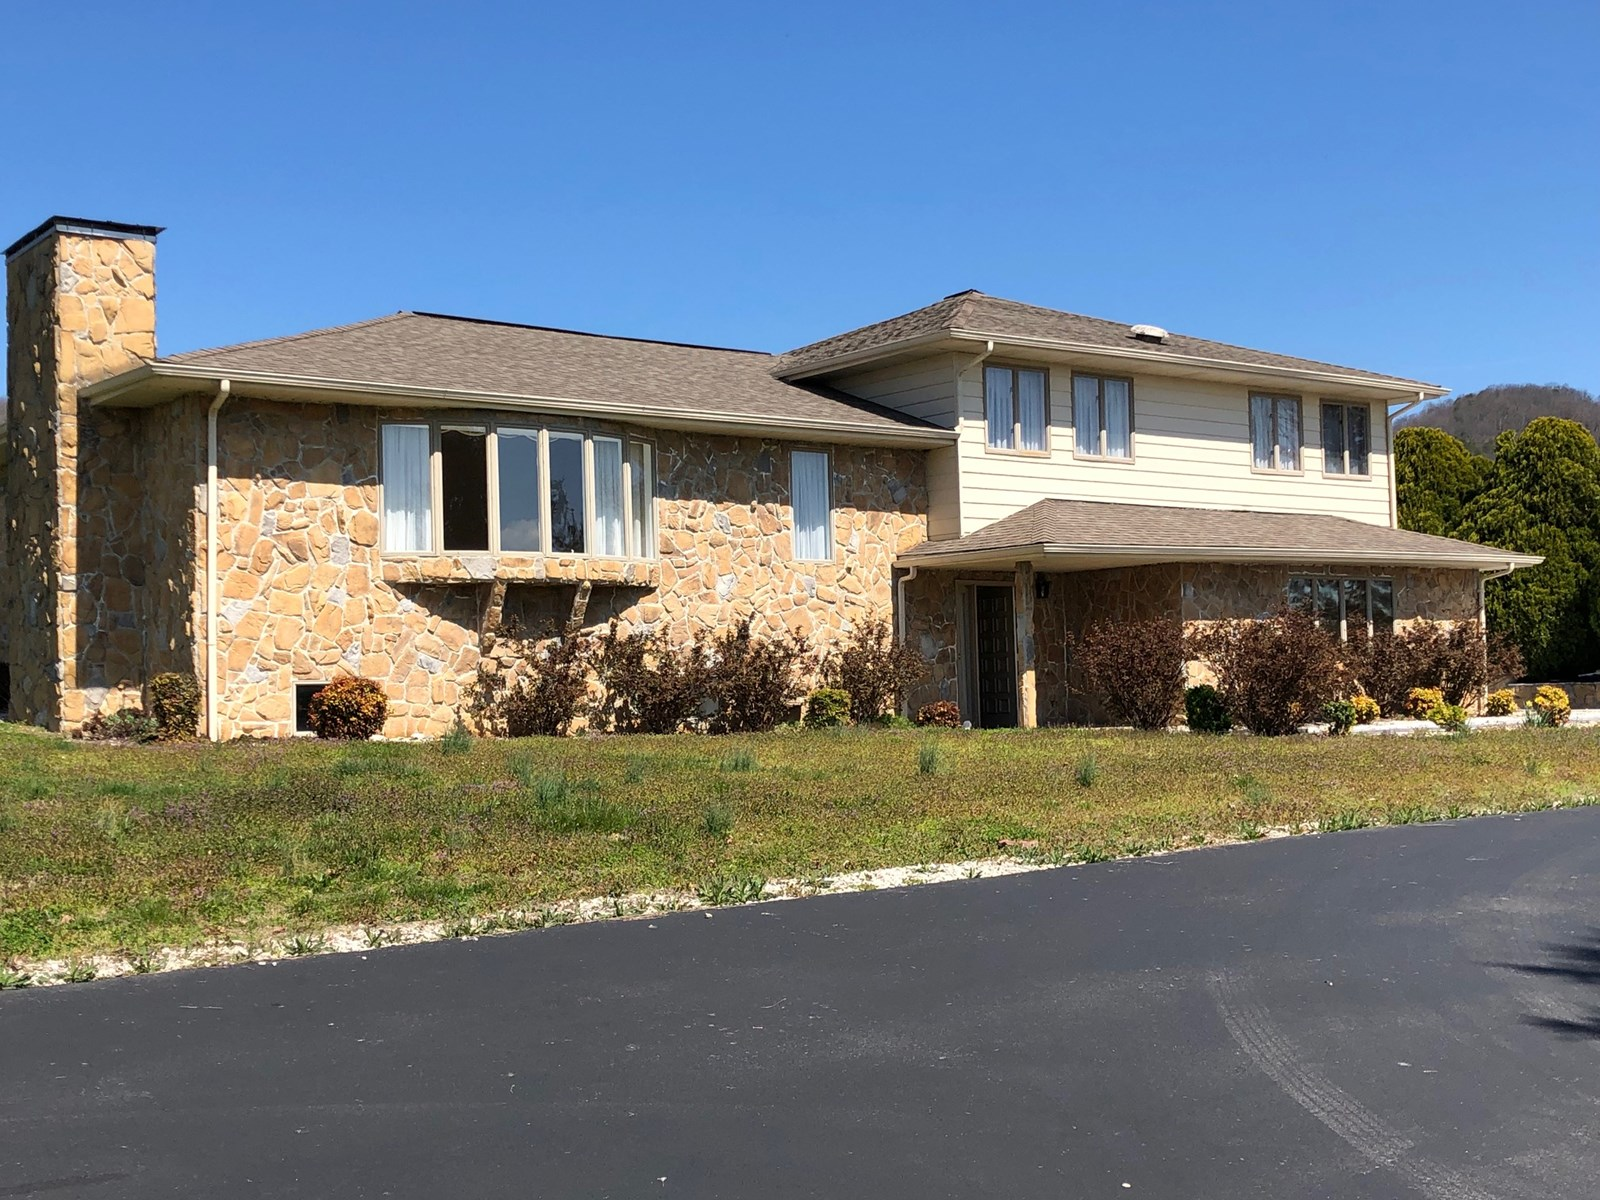 3 BR, 2 1/2 BA Stone Home Overlooking Cherokee Lake